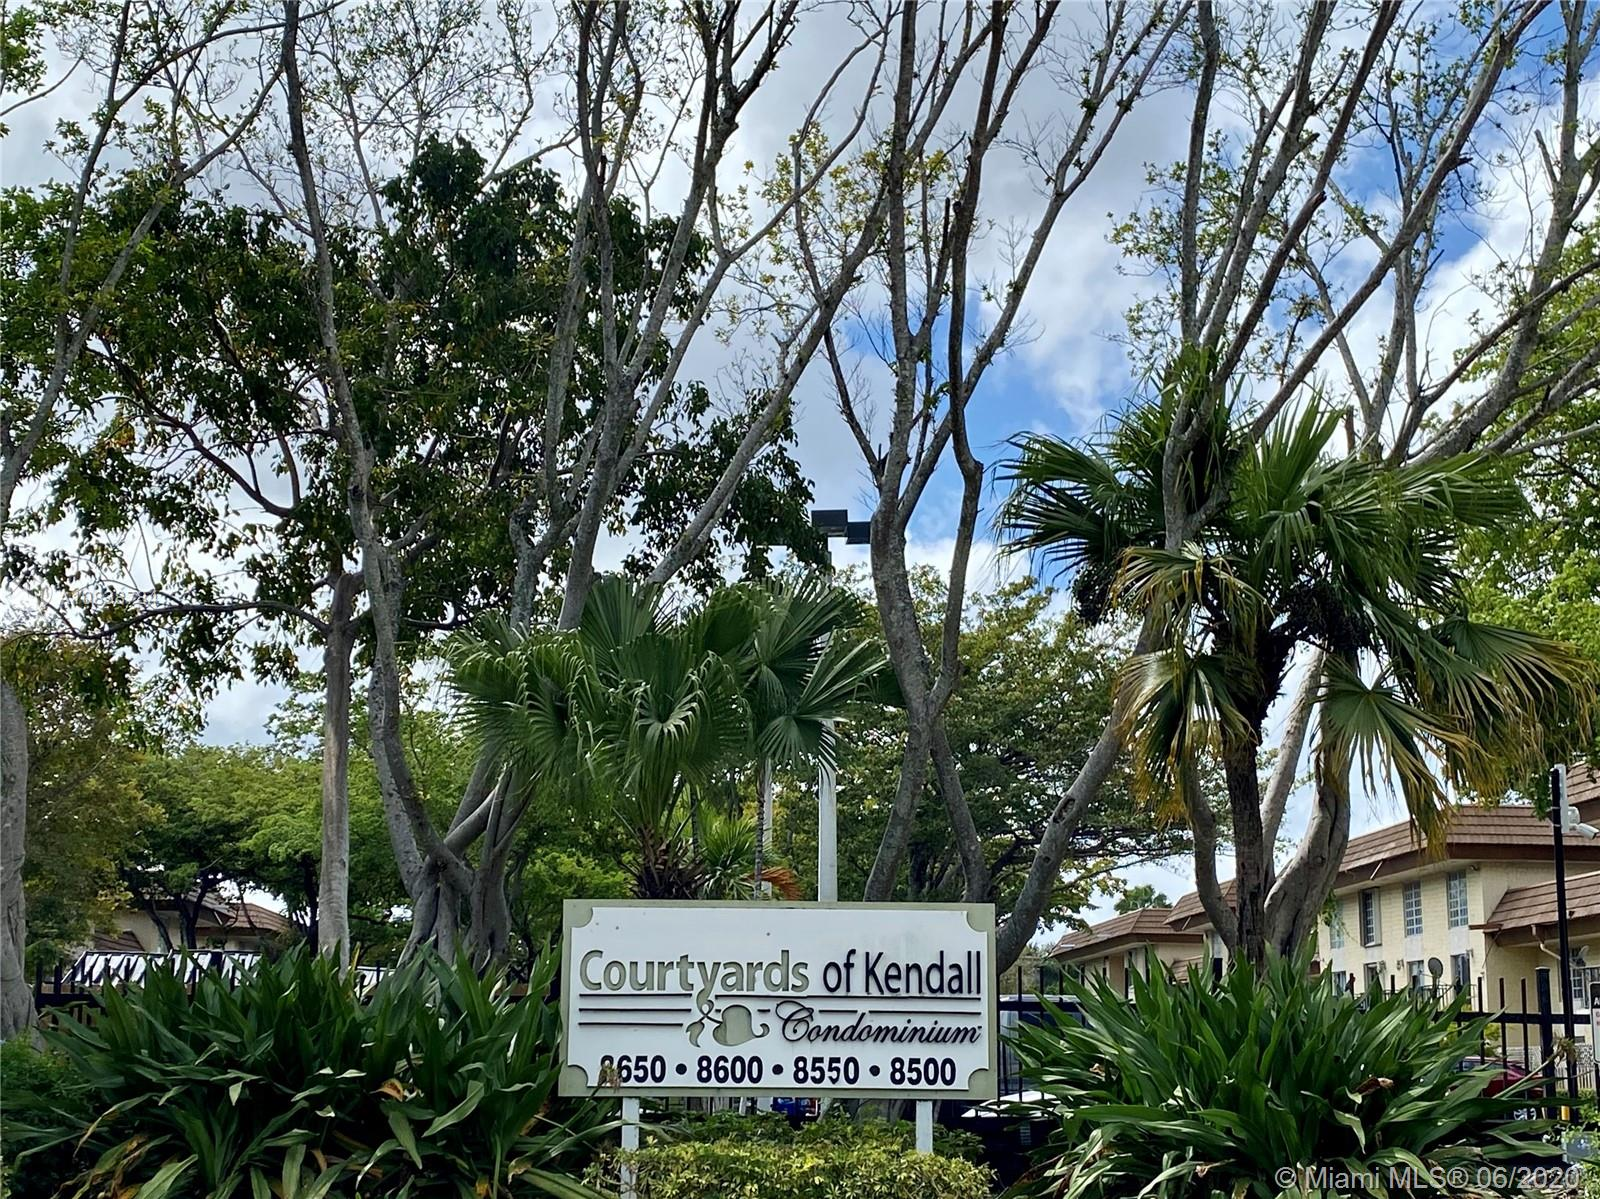 8500 SW 109 Ave # 205, Miami, Florida 33173, 1 Bedroom Bedrooms, ,1 BathroomBathrooms,Residential,For Sale,8500 SW 109 Ave # 205,A10838784